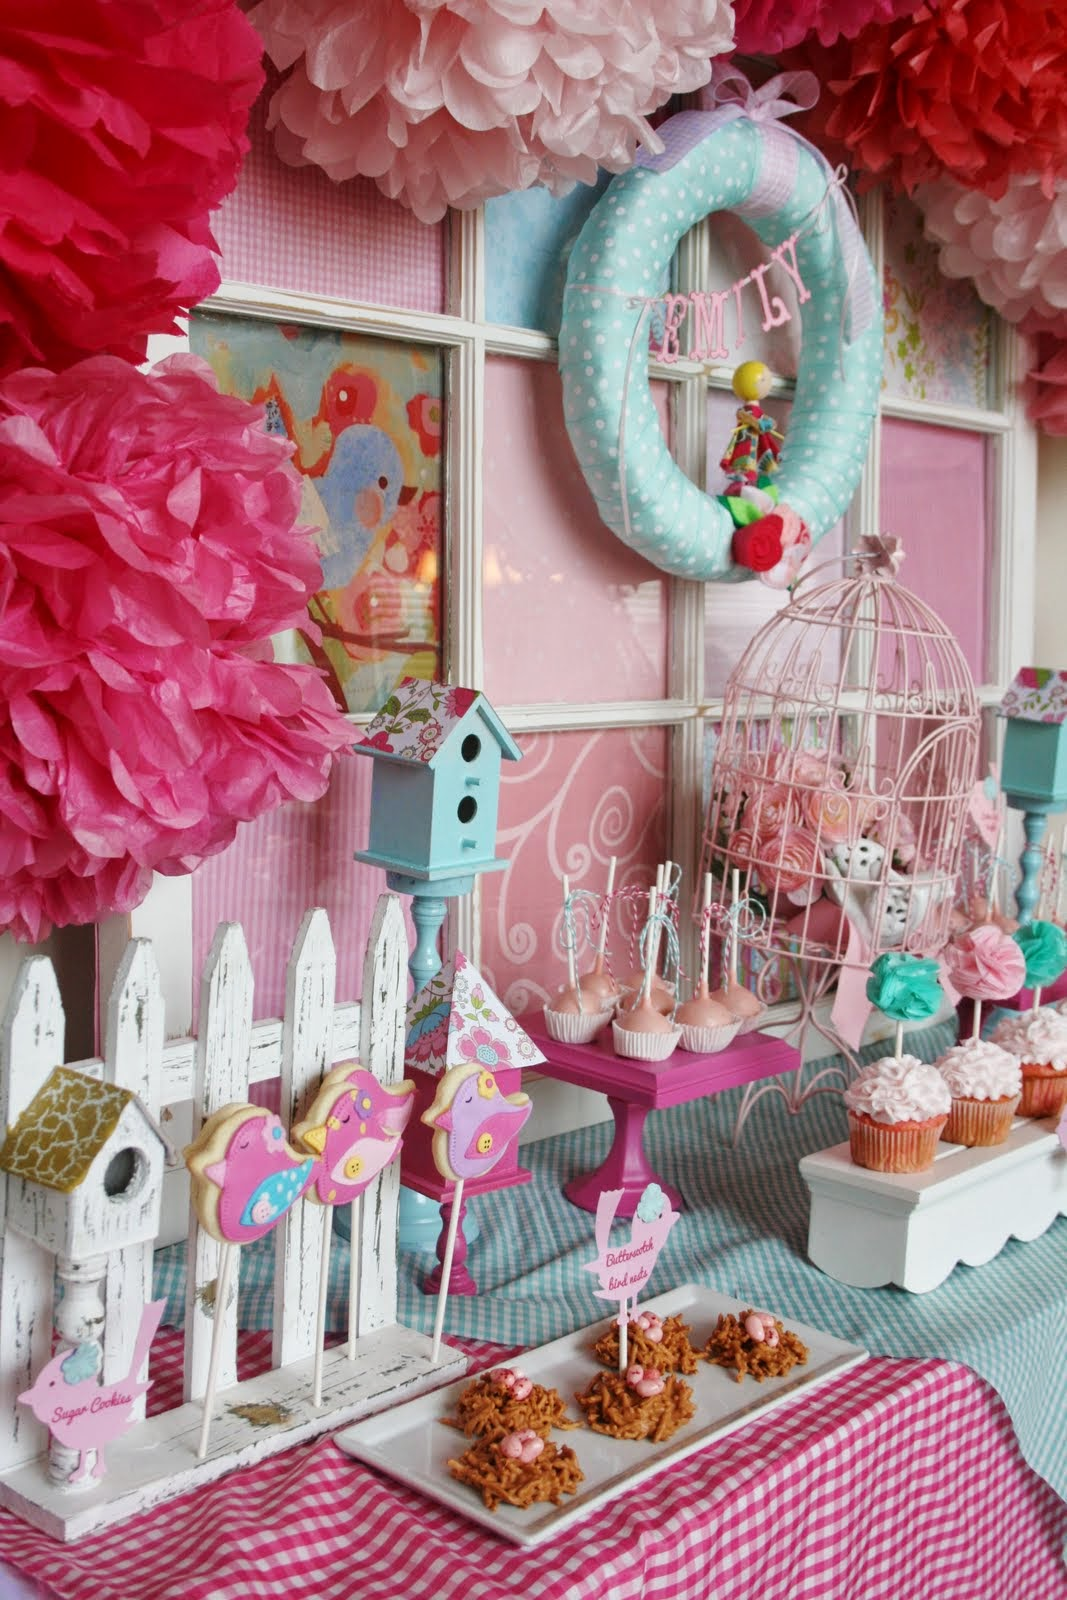 All about women 39 s things baby shower decorating ideas for for Cute inexpensive home decor